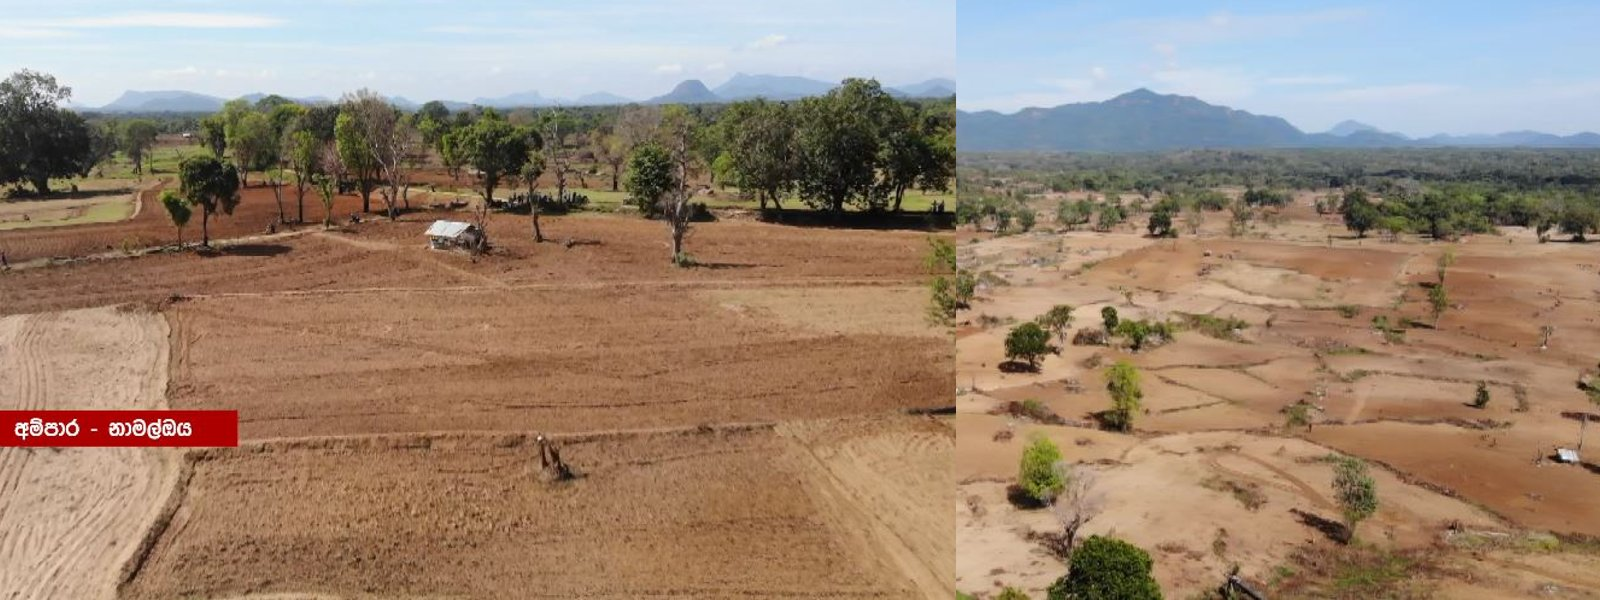 Vast tracts of Agri-land lay barren due to fertiliser crisis